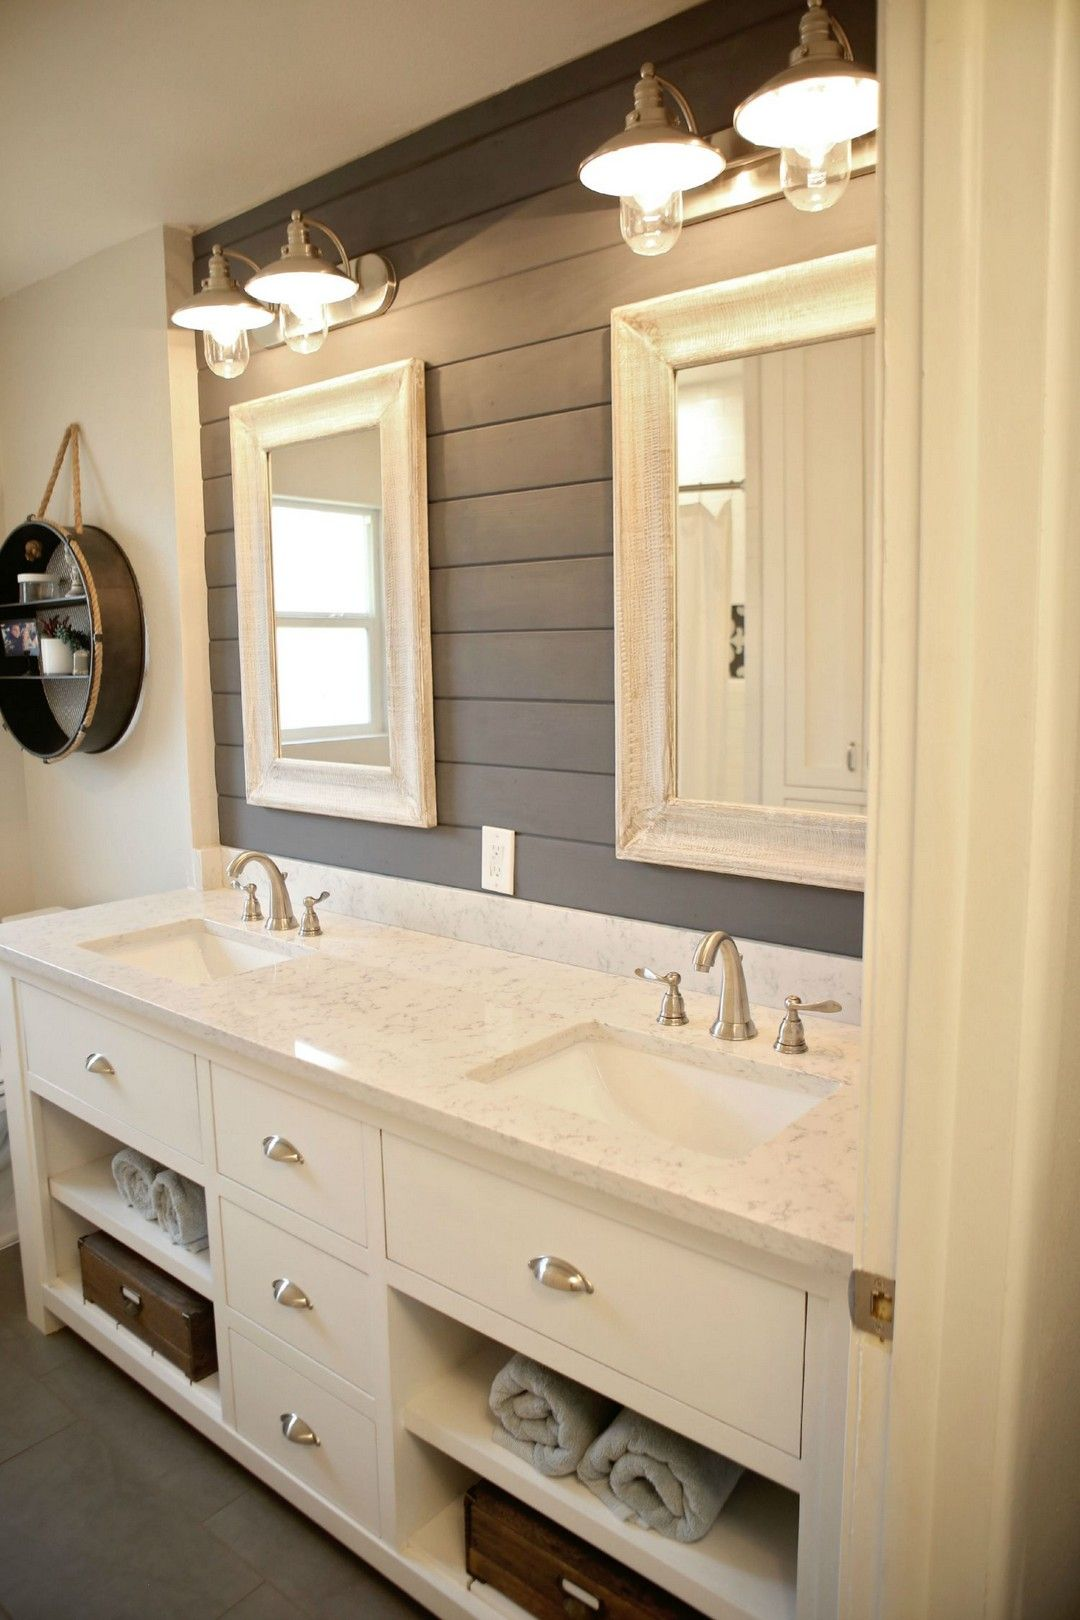 99 ideas cheap and easy diy shiplap wall - Cheap Bathroom Makeover